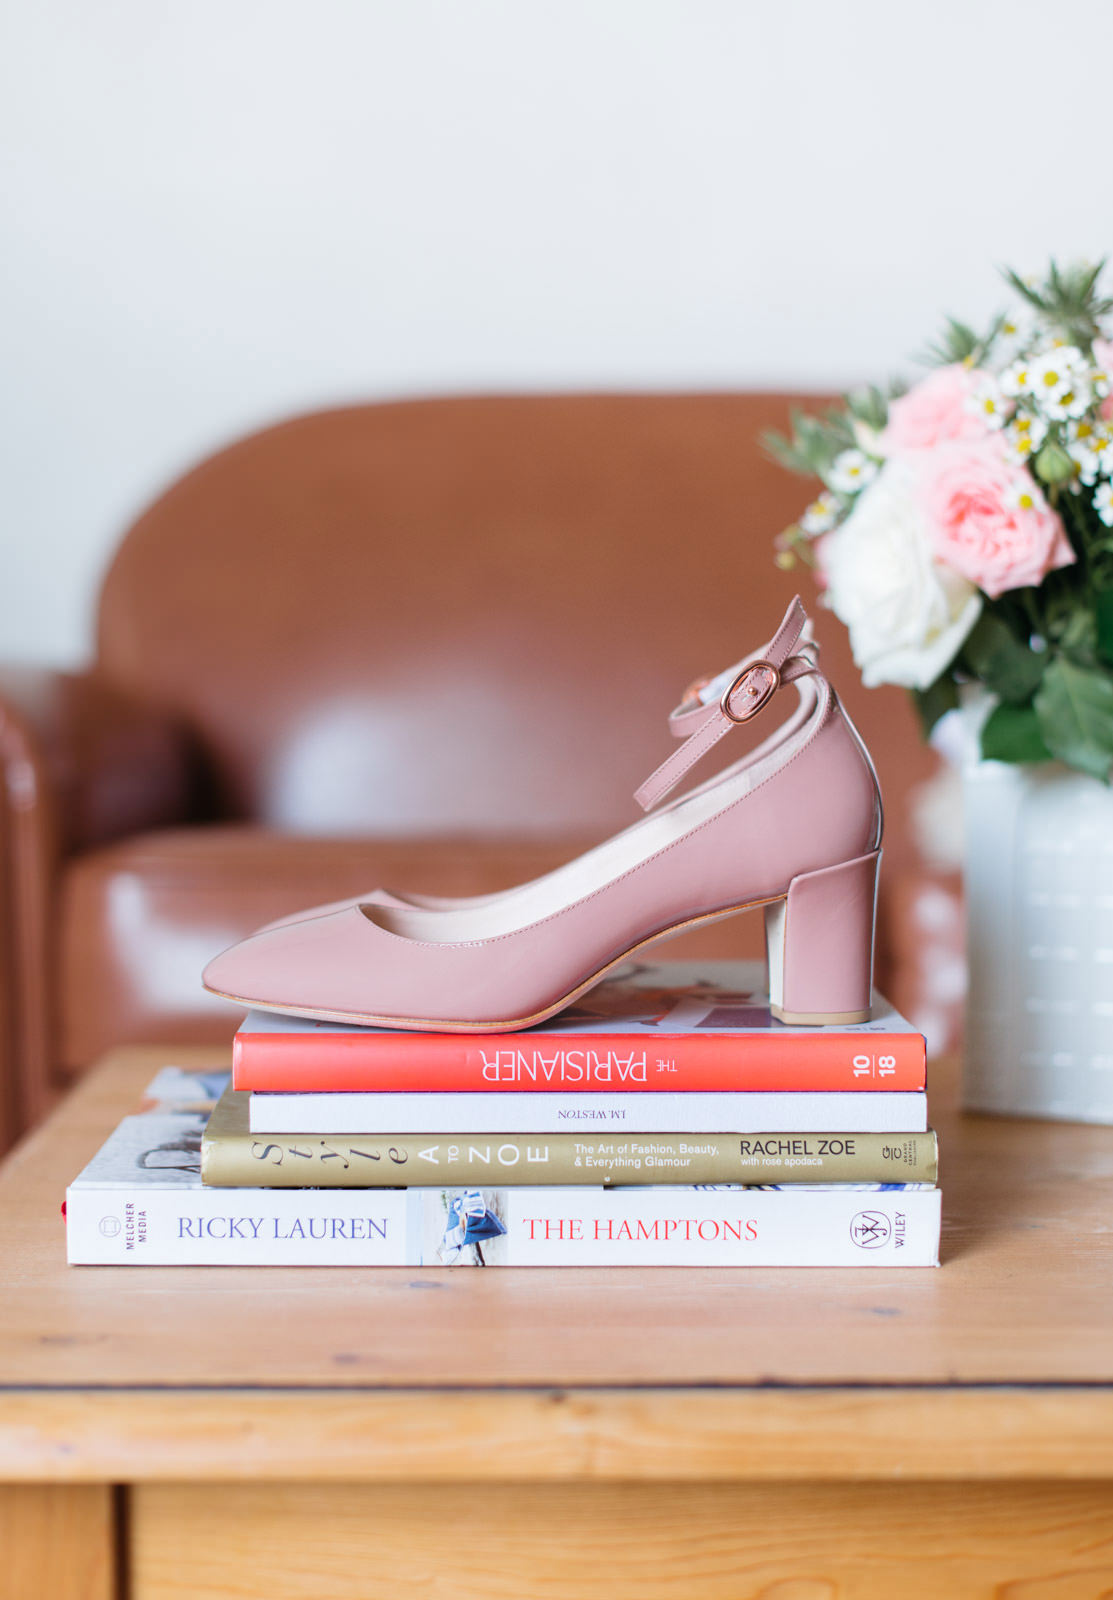 Blog-Mode-And-The-City-Lifestyle-Cinq-Petites-Choses-186-electra-rapetto-chaussures-talons2